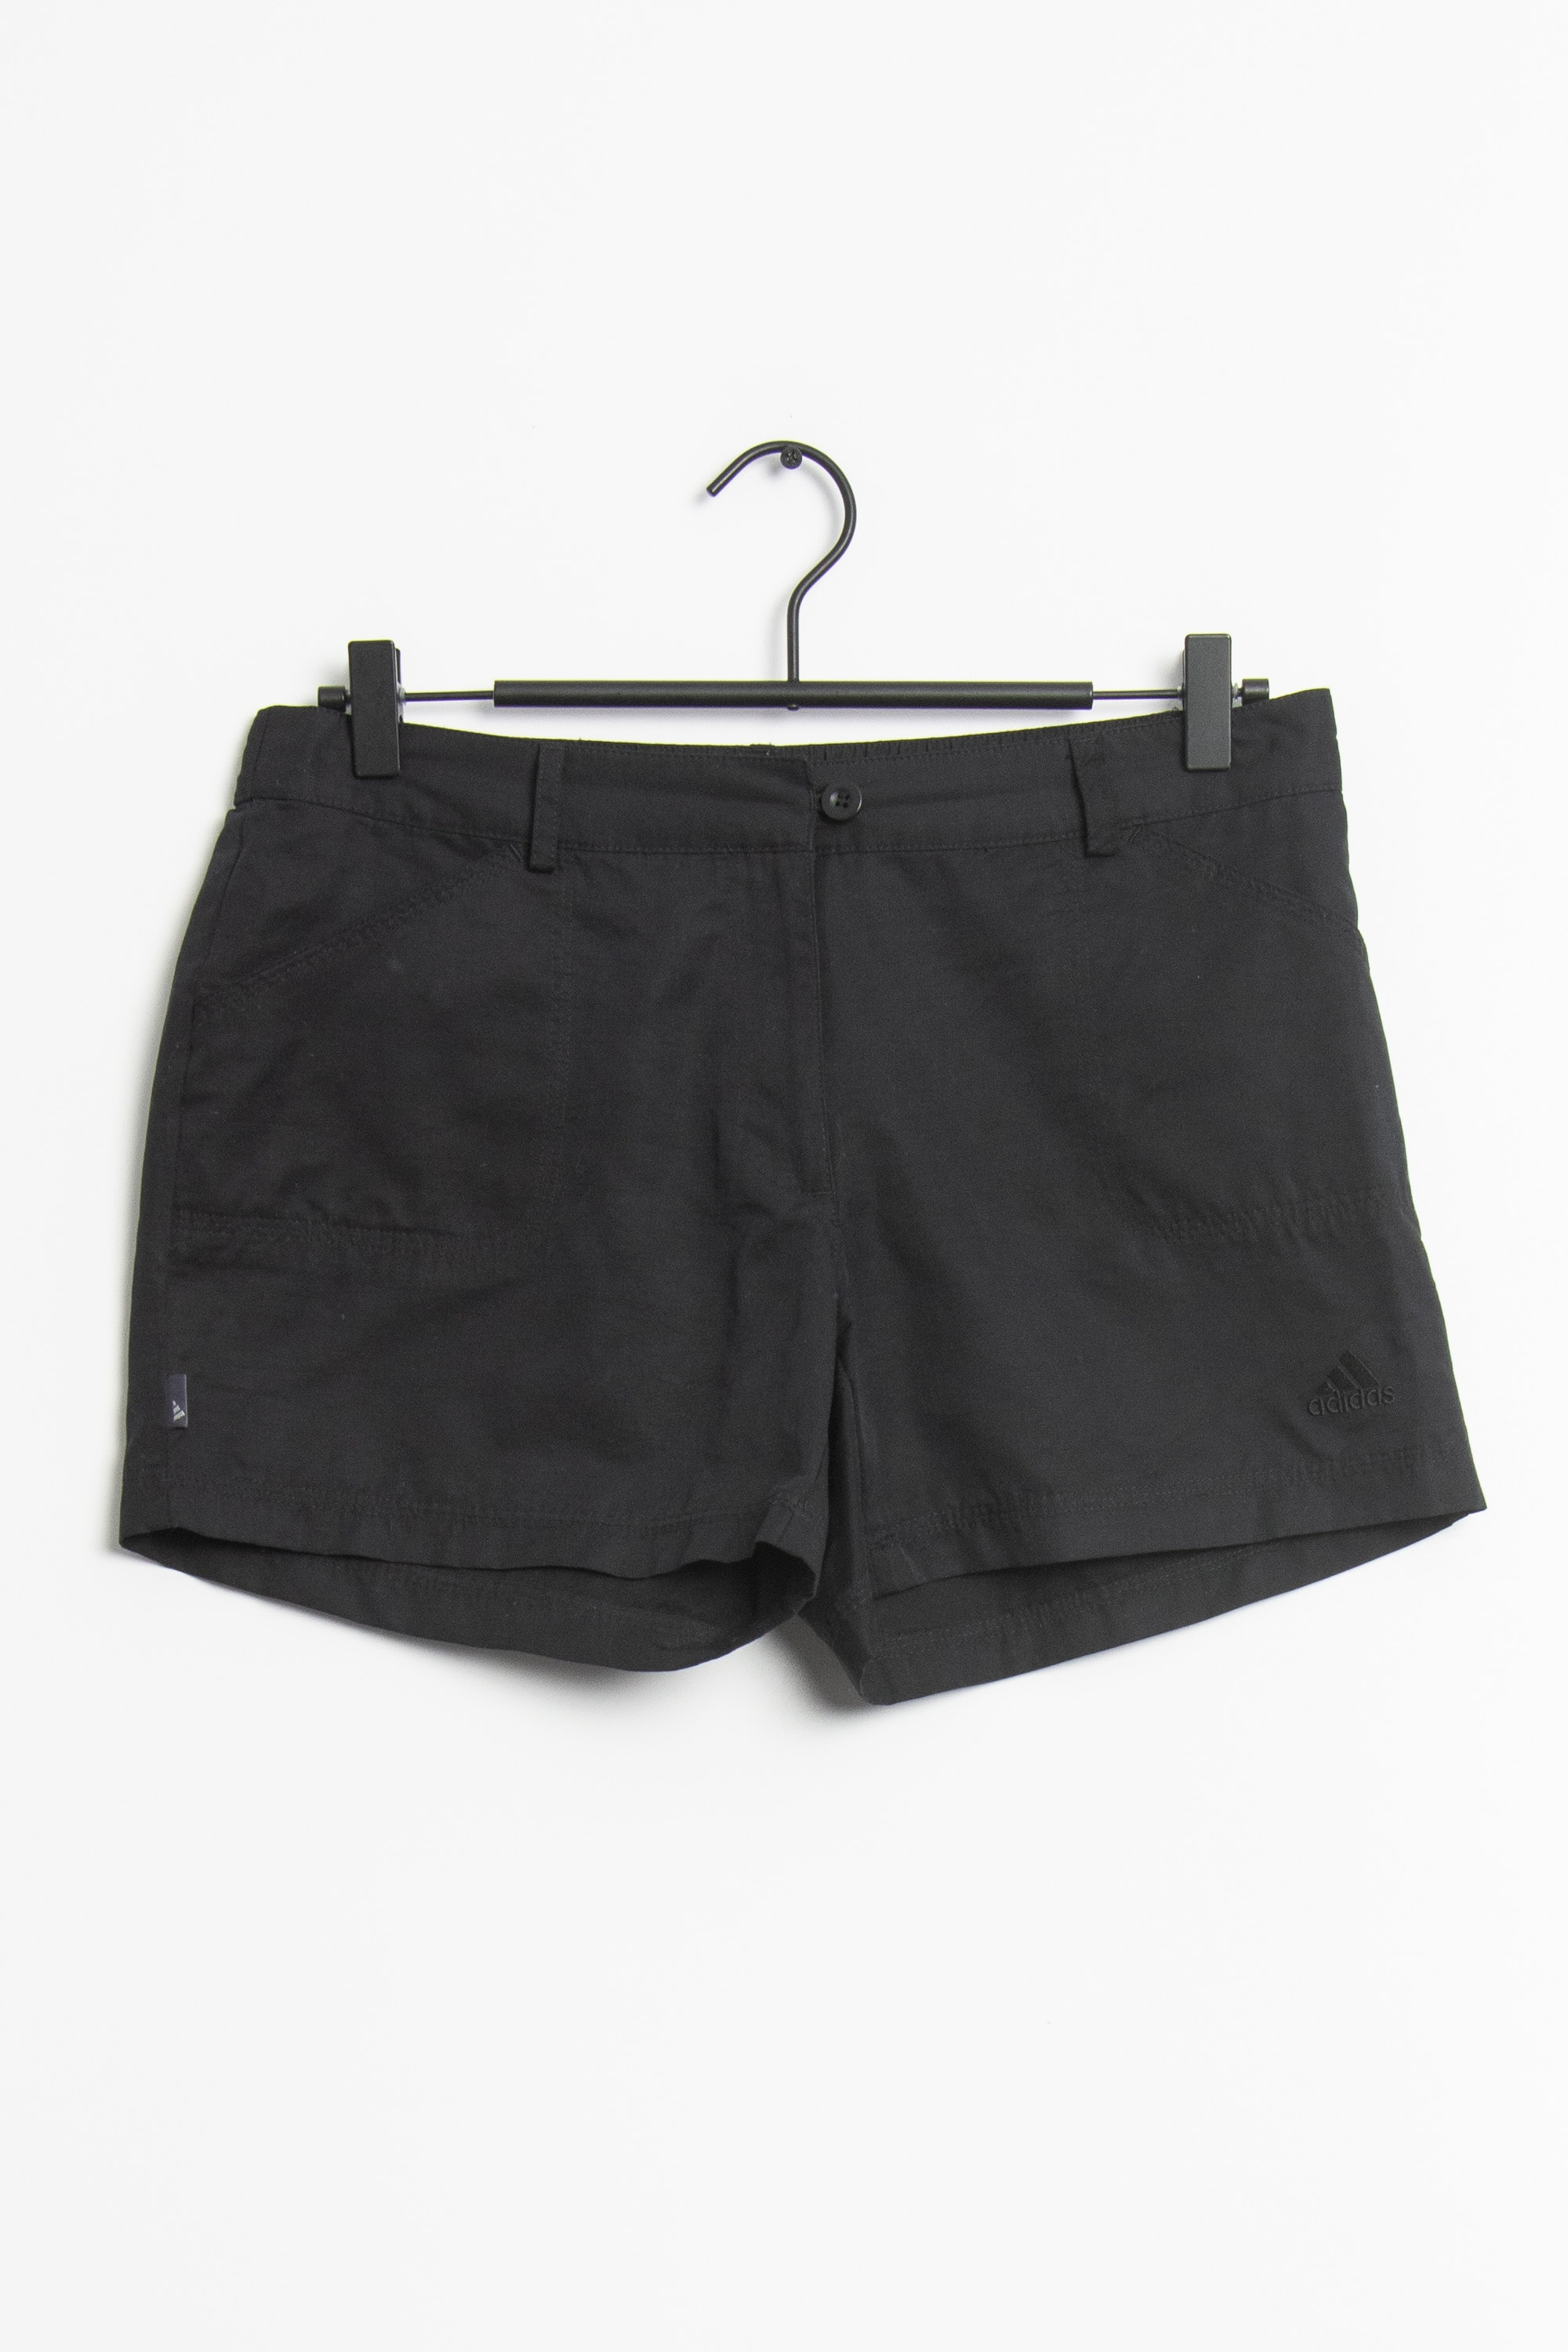 ADIDAS ORIGINALS Shorts Schwarz Gr.36